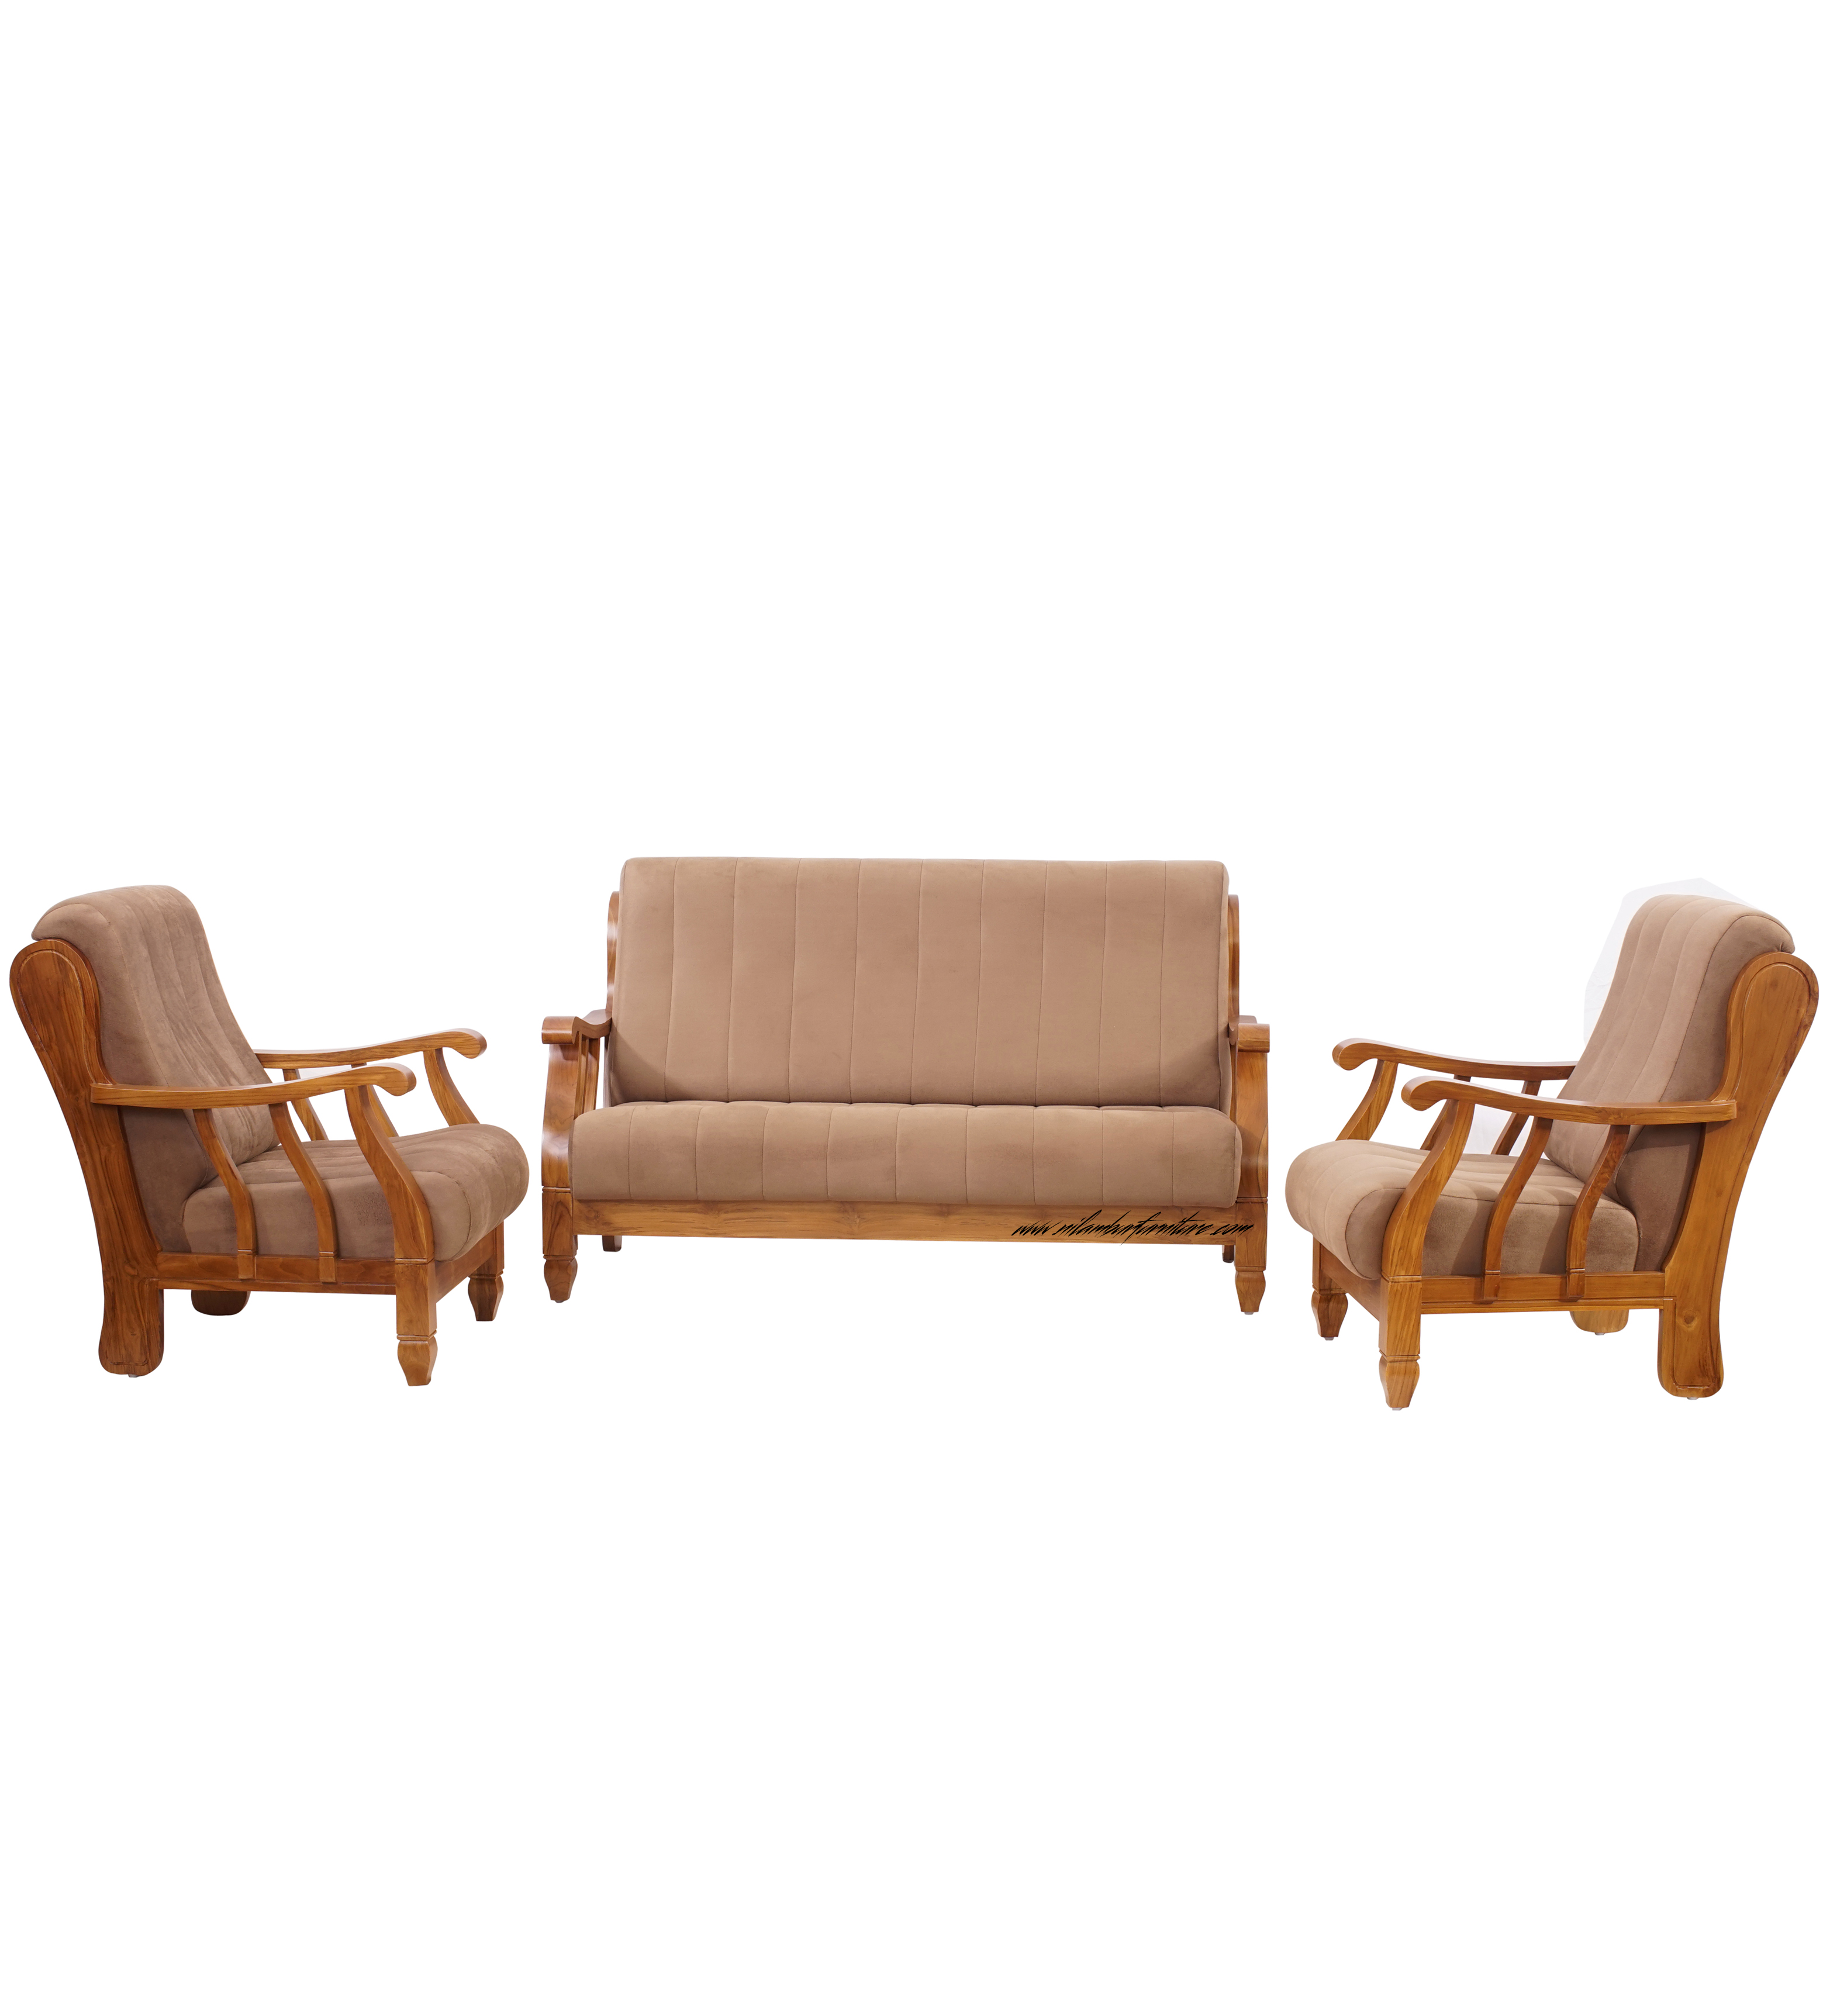 Caramel Teak Wood Sofa Set 311 Designs Wooden Carving Sets Product On Alibaba